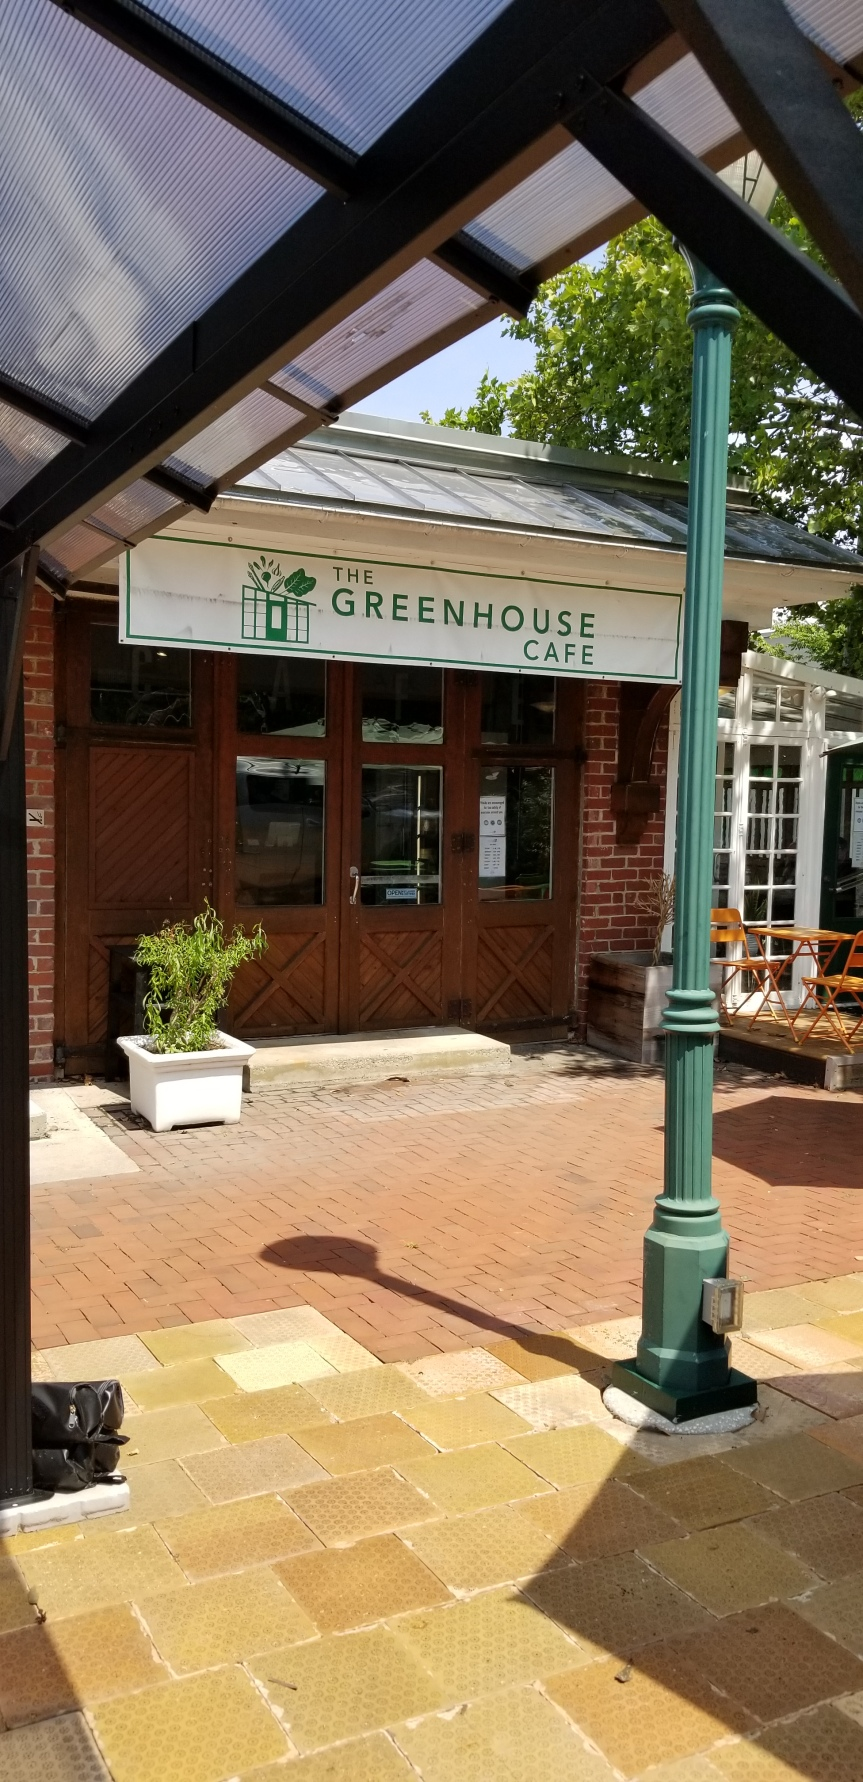 The Greenhouse Cafe, 18 State Hill Rd. Wyomissing, PA 19610, Phone:(484)509-2121